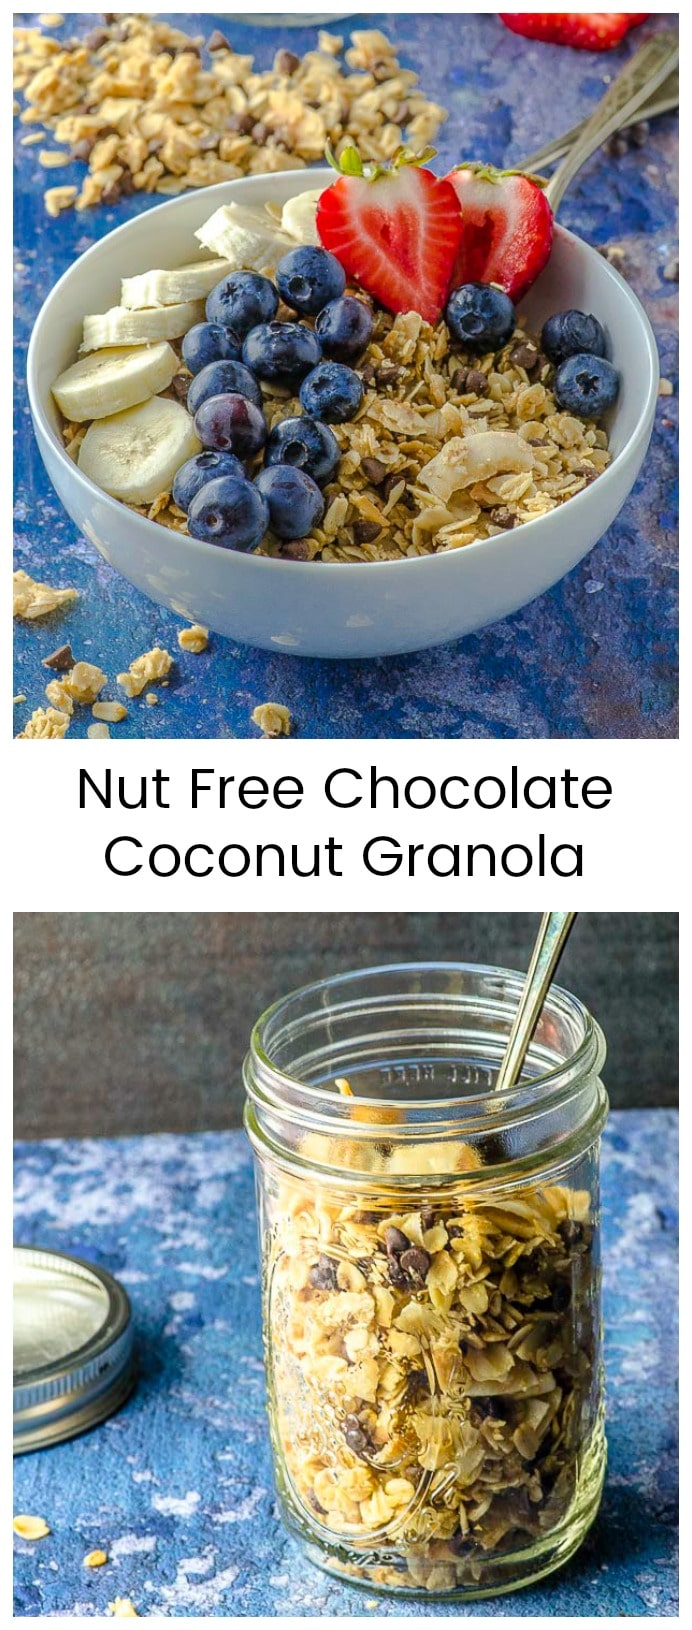 Six ingredients are all you need to make this insanely addictive and delicious nut-free t chocolate coconut granola recipe. #breakfast #granola #nut-free #Gluten-free #coconut # chocolate